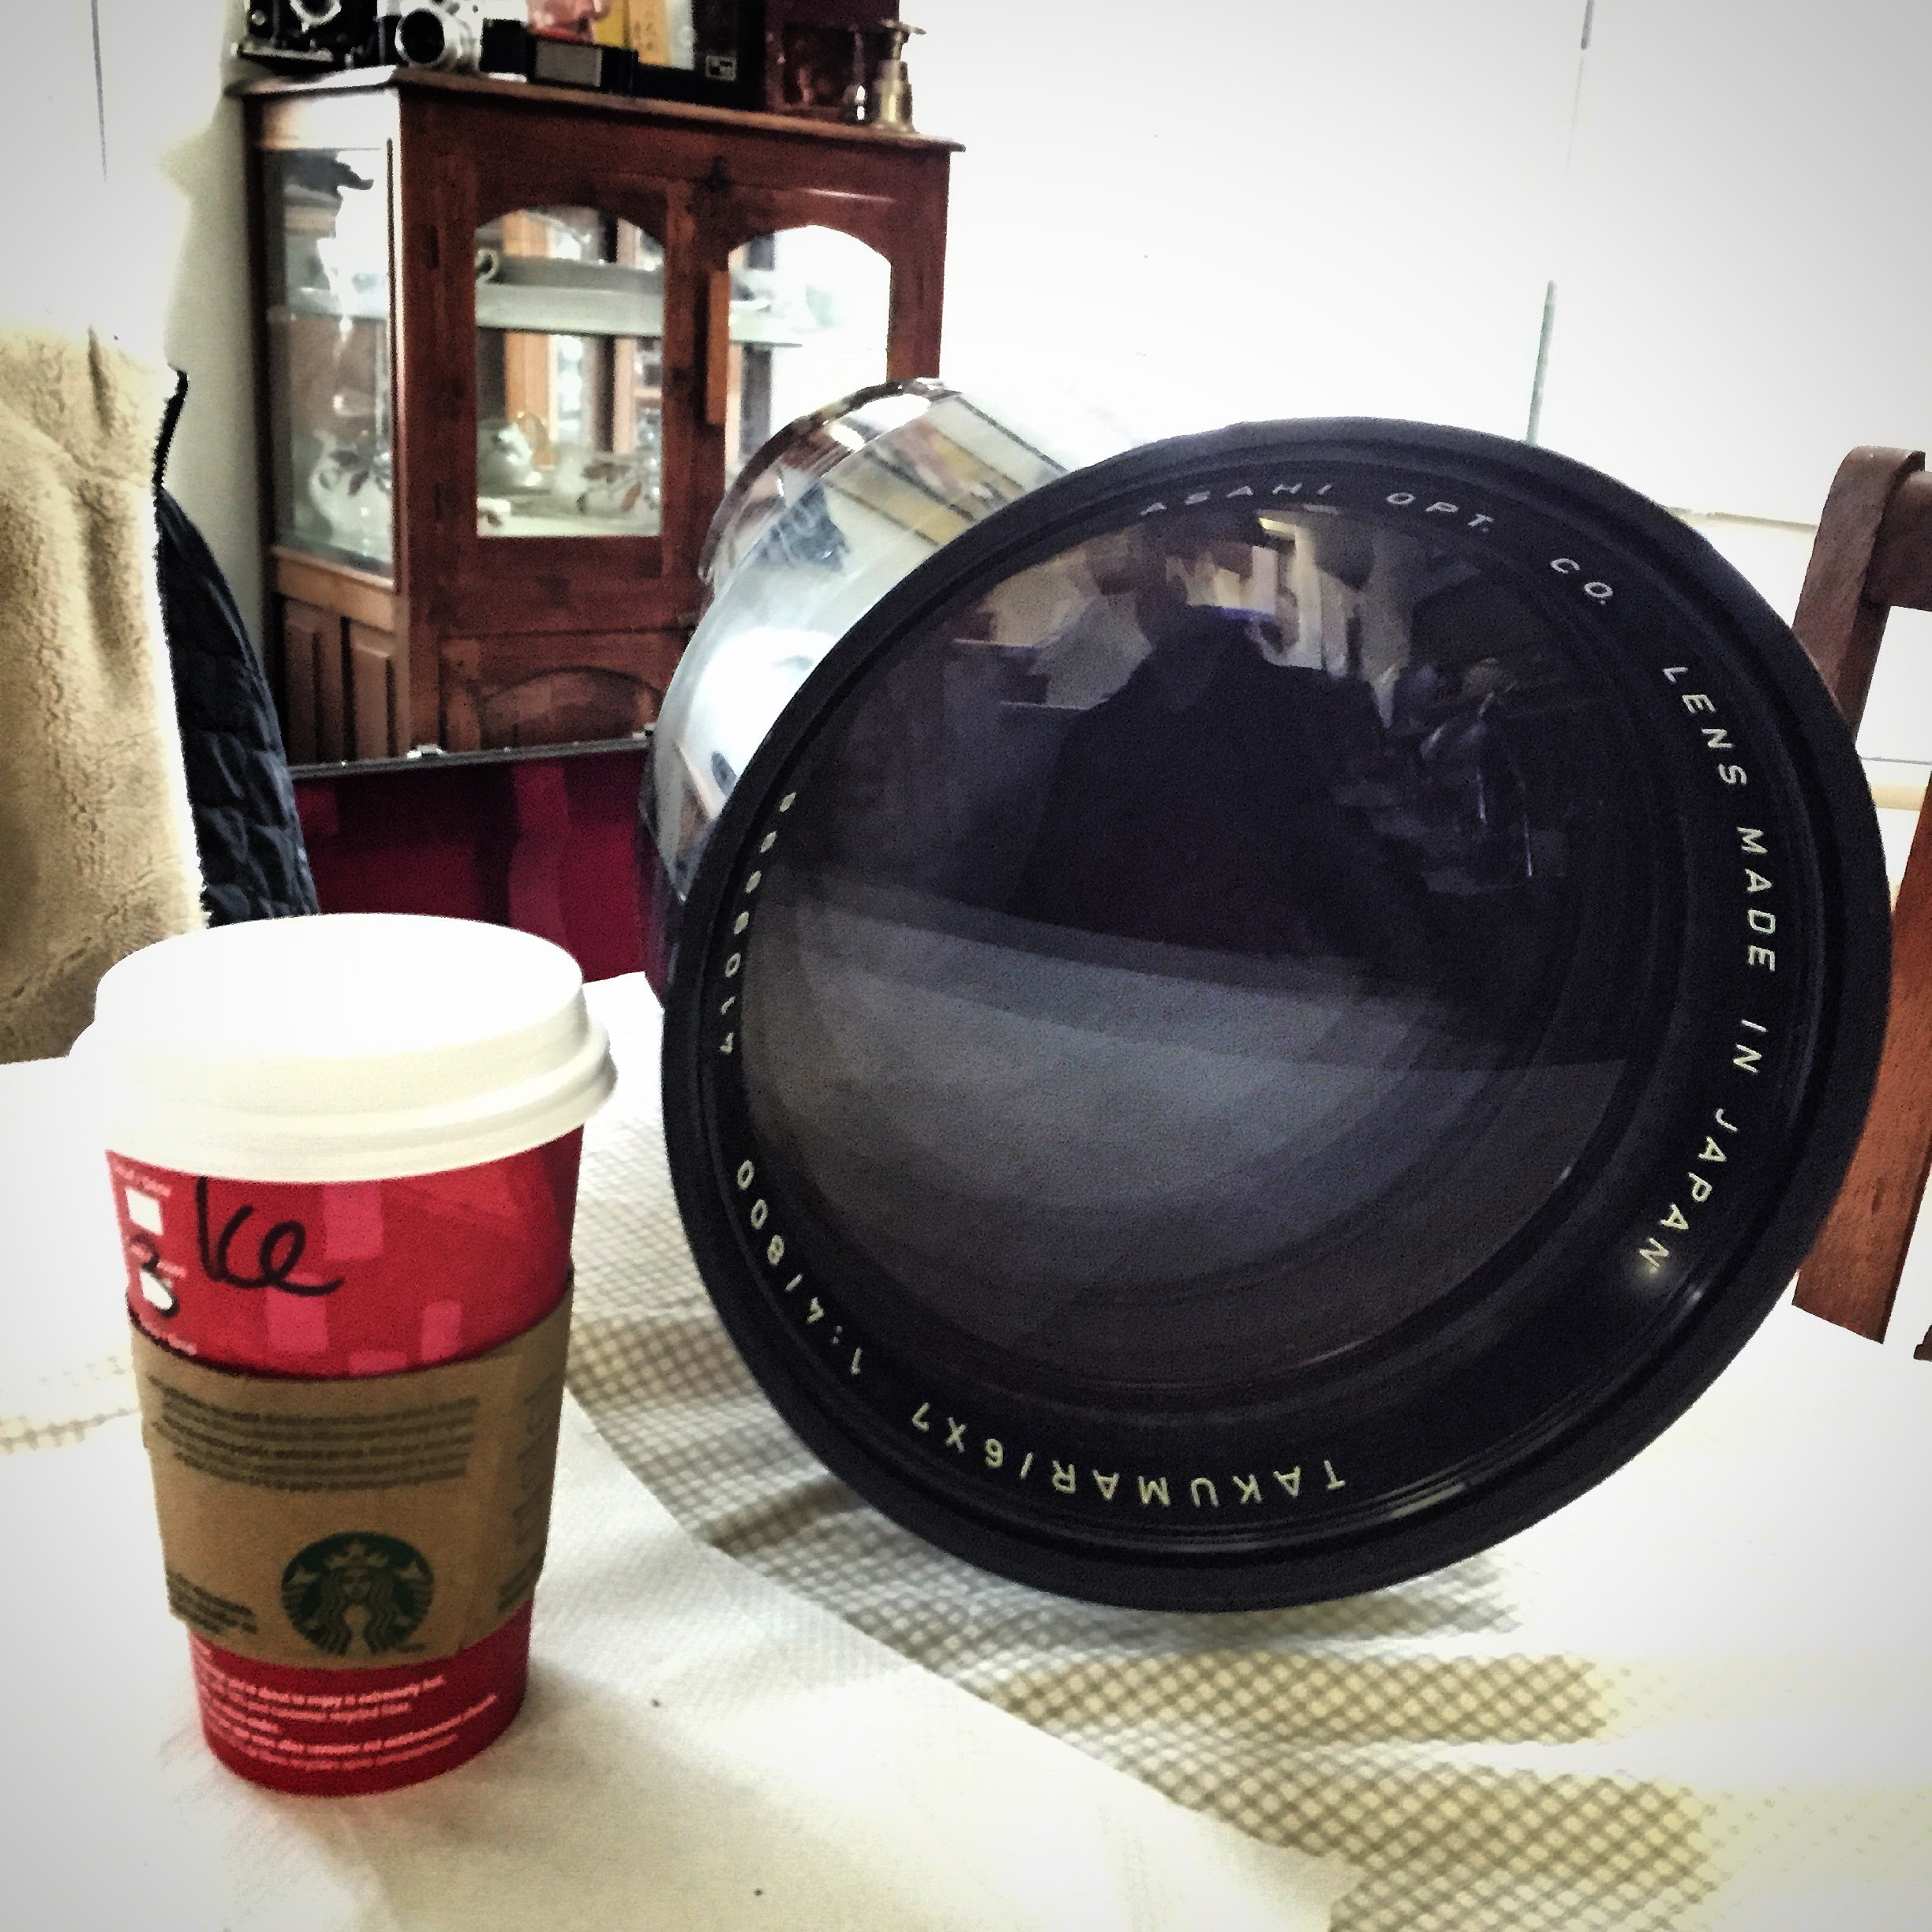 That's a Grande Starbucks Cup by the way. Two guesses where this lens goes.